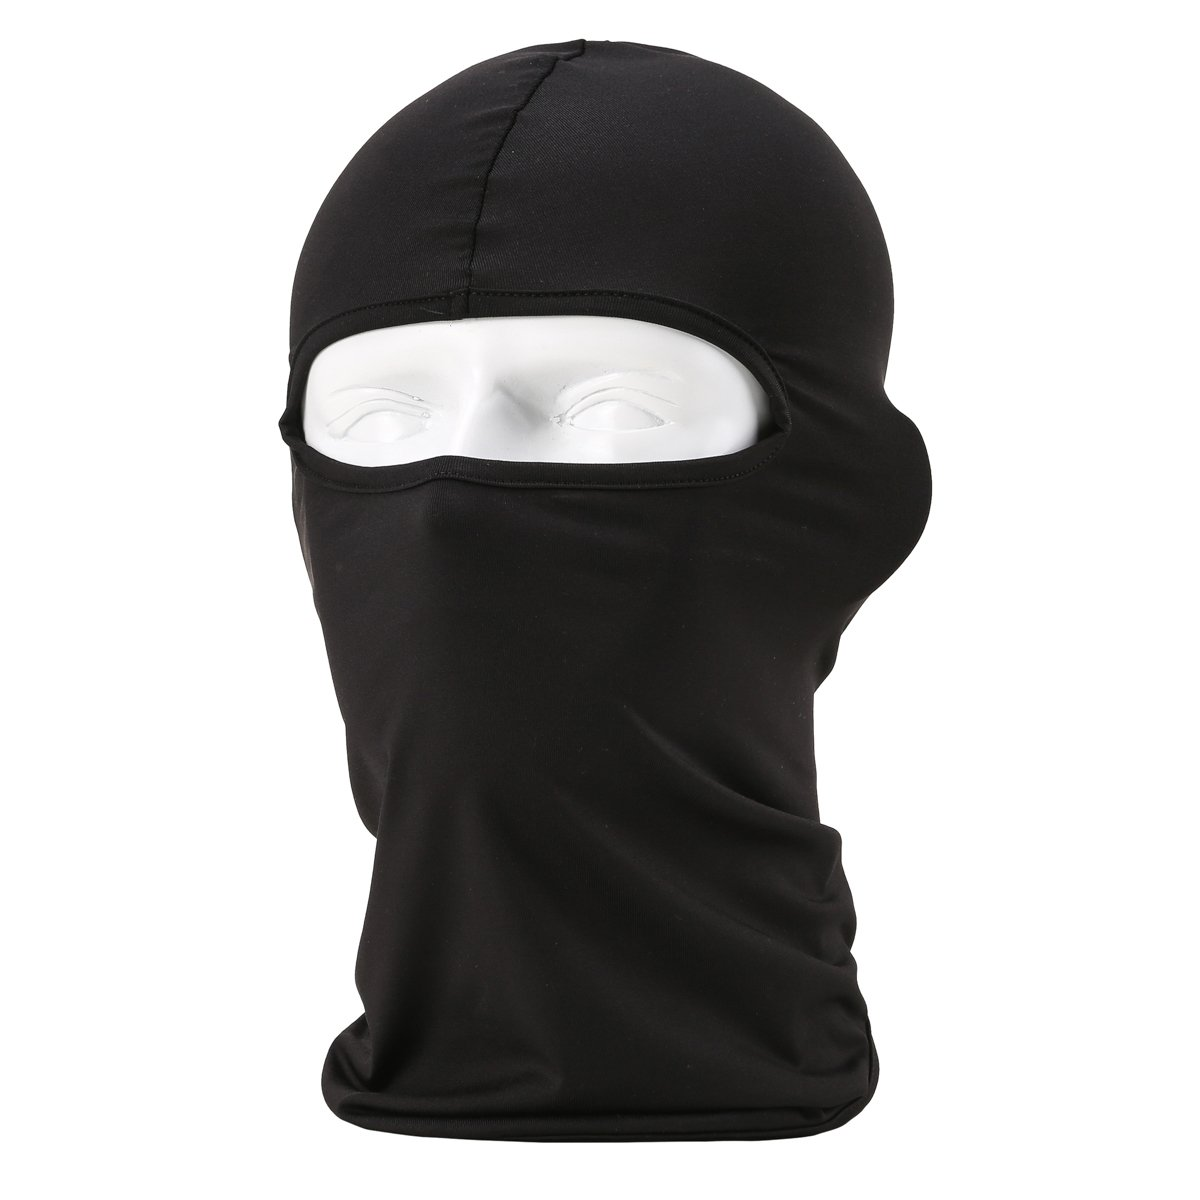 Balaclava Face Mask Windproof Cool Ski Face Breathable Mask Motorcycle Cycling Bike Hiking Skateboard Sweatproof Balaclava for Women Men HARMONER